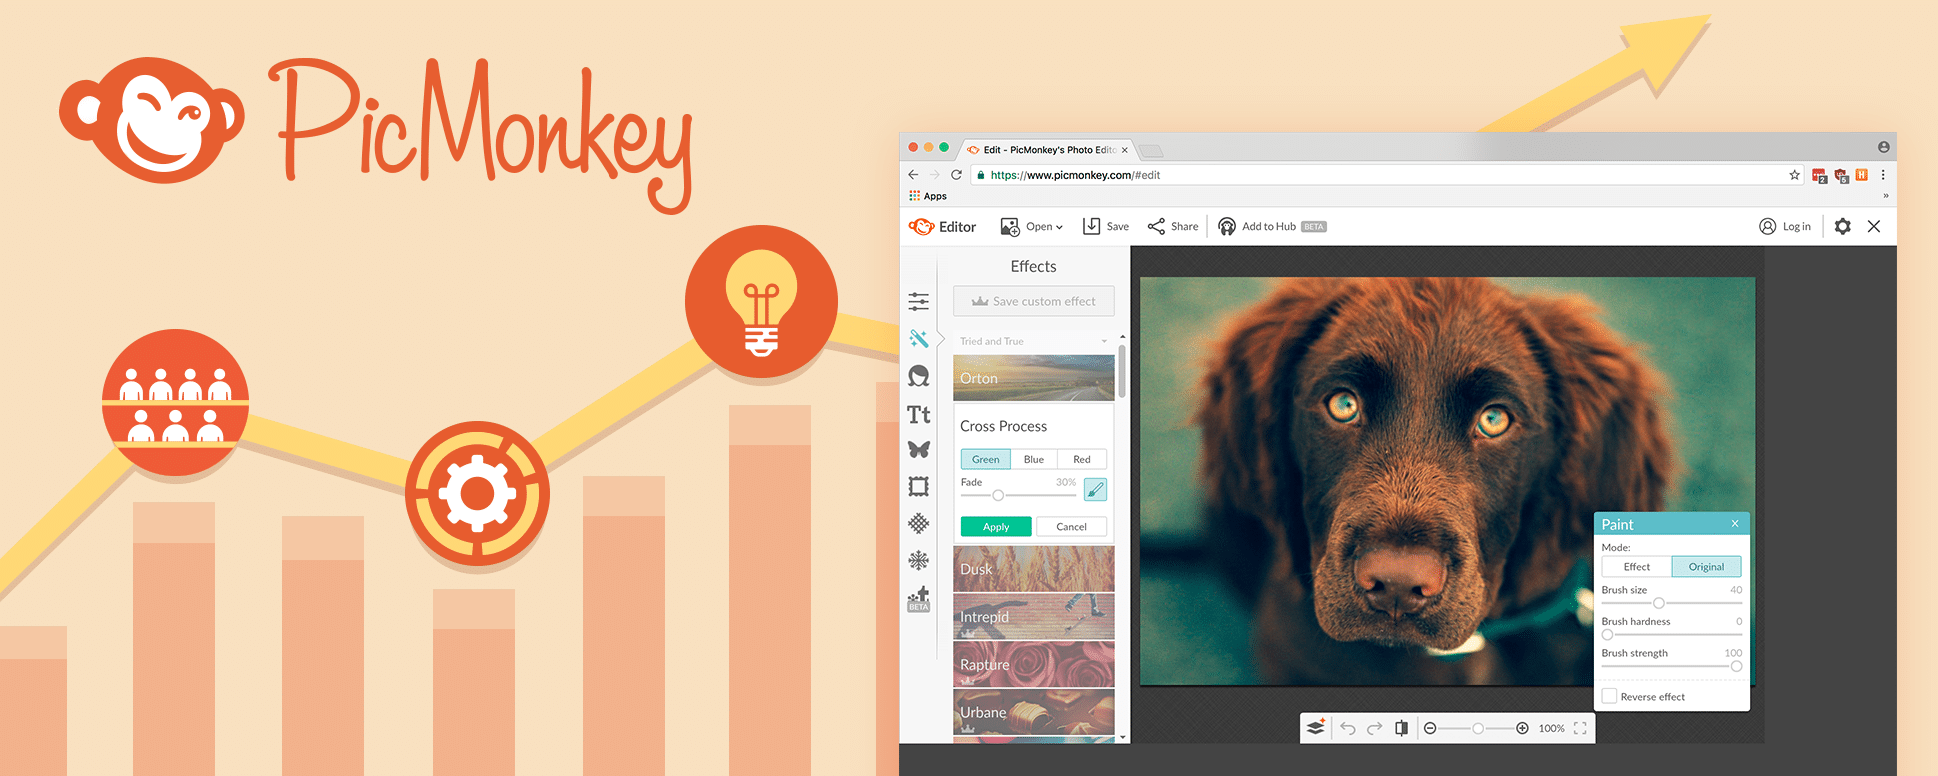 PicMonkey: Using Report Automation to Improve Decision Making & Drive Growth